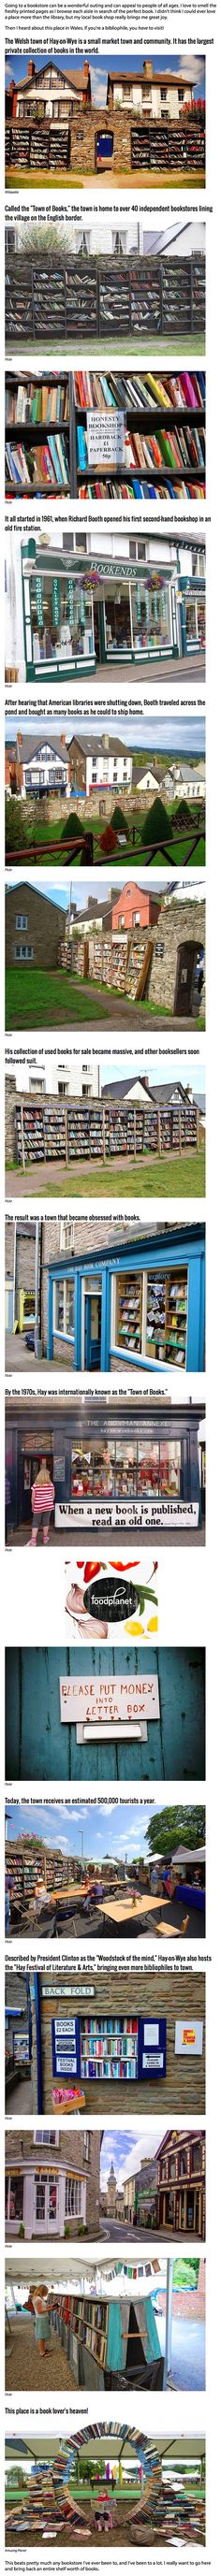 Book lovers rejoice! This town actually exists.